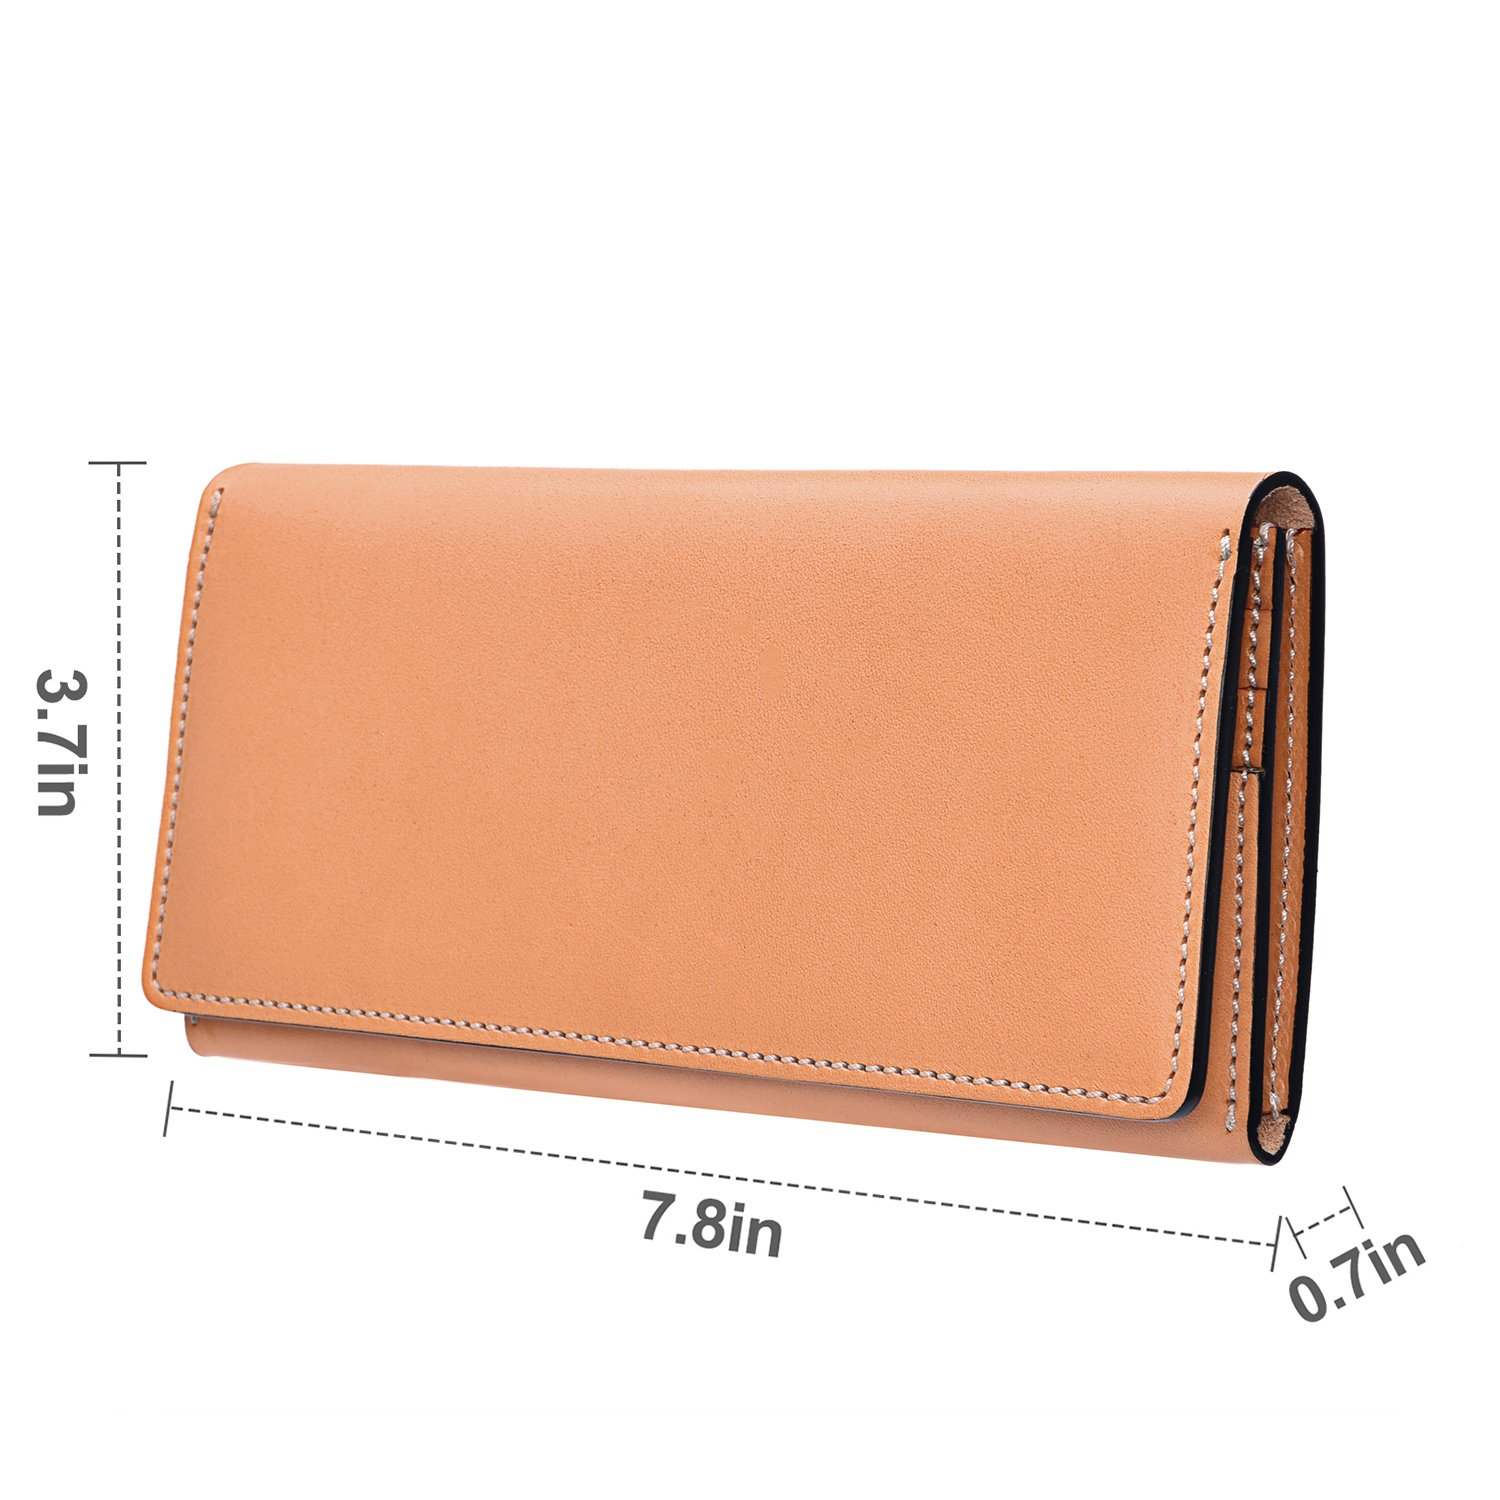 6949c6bcdd94 GRM Mens Wallet Genuine Leather Bifold Purse Card Holder with ID ...